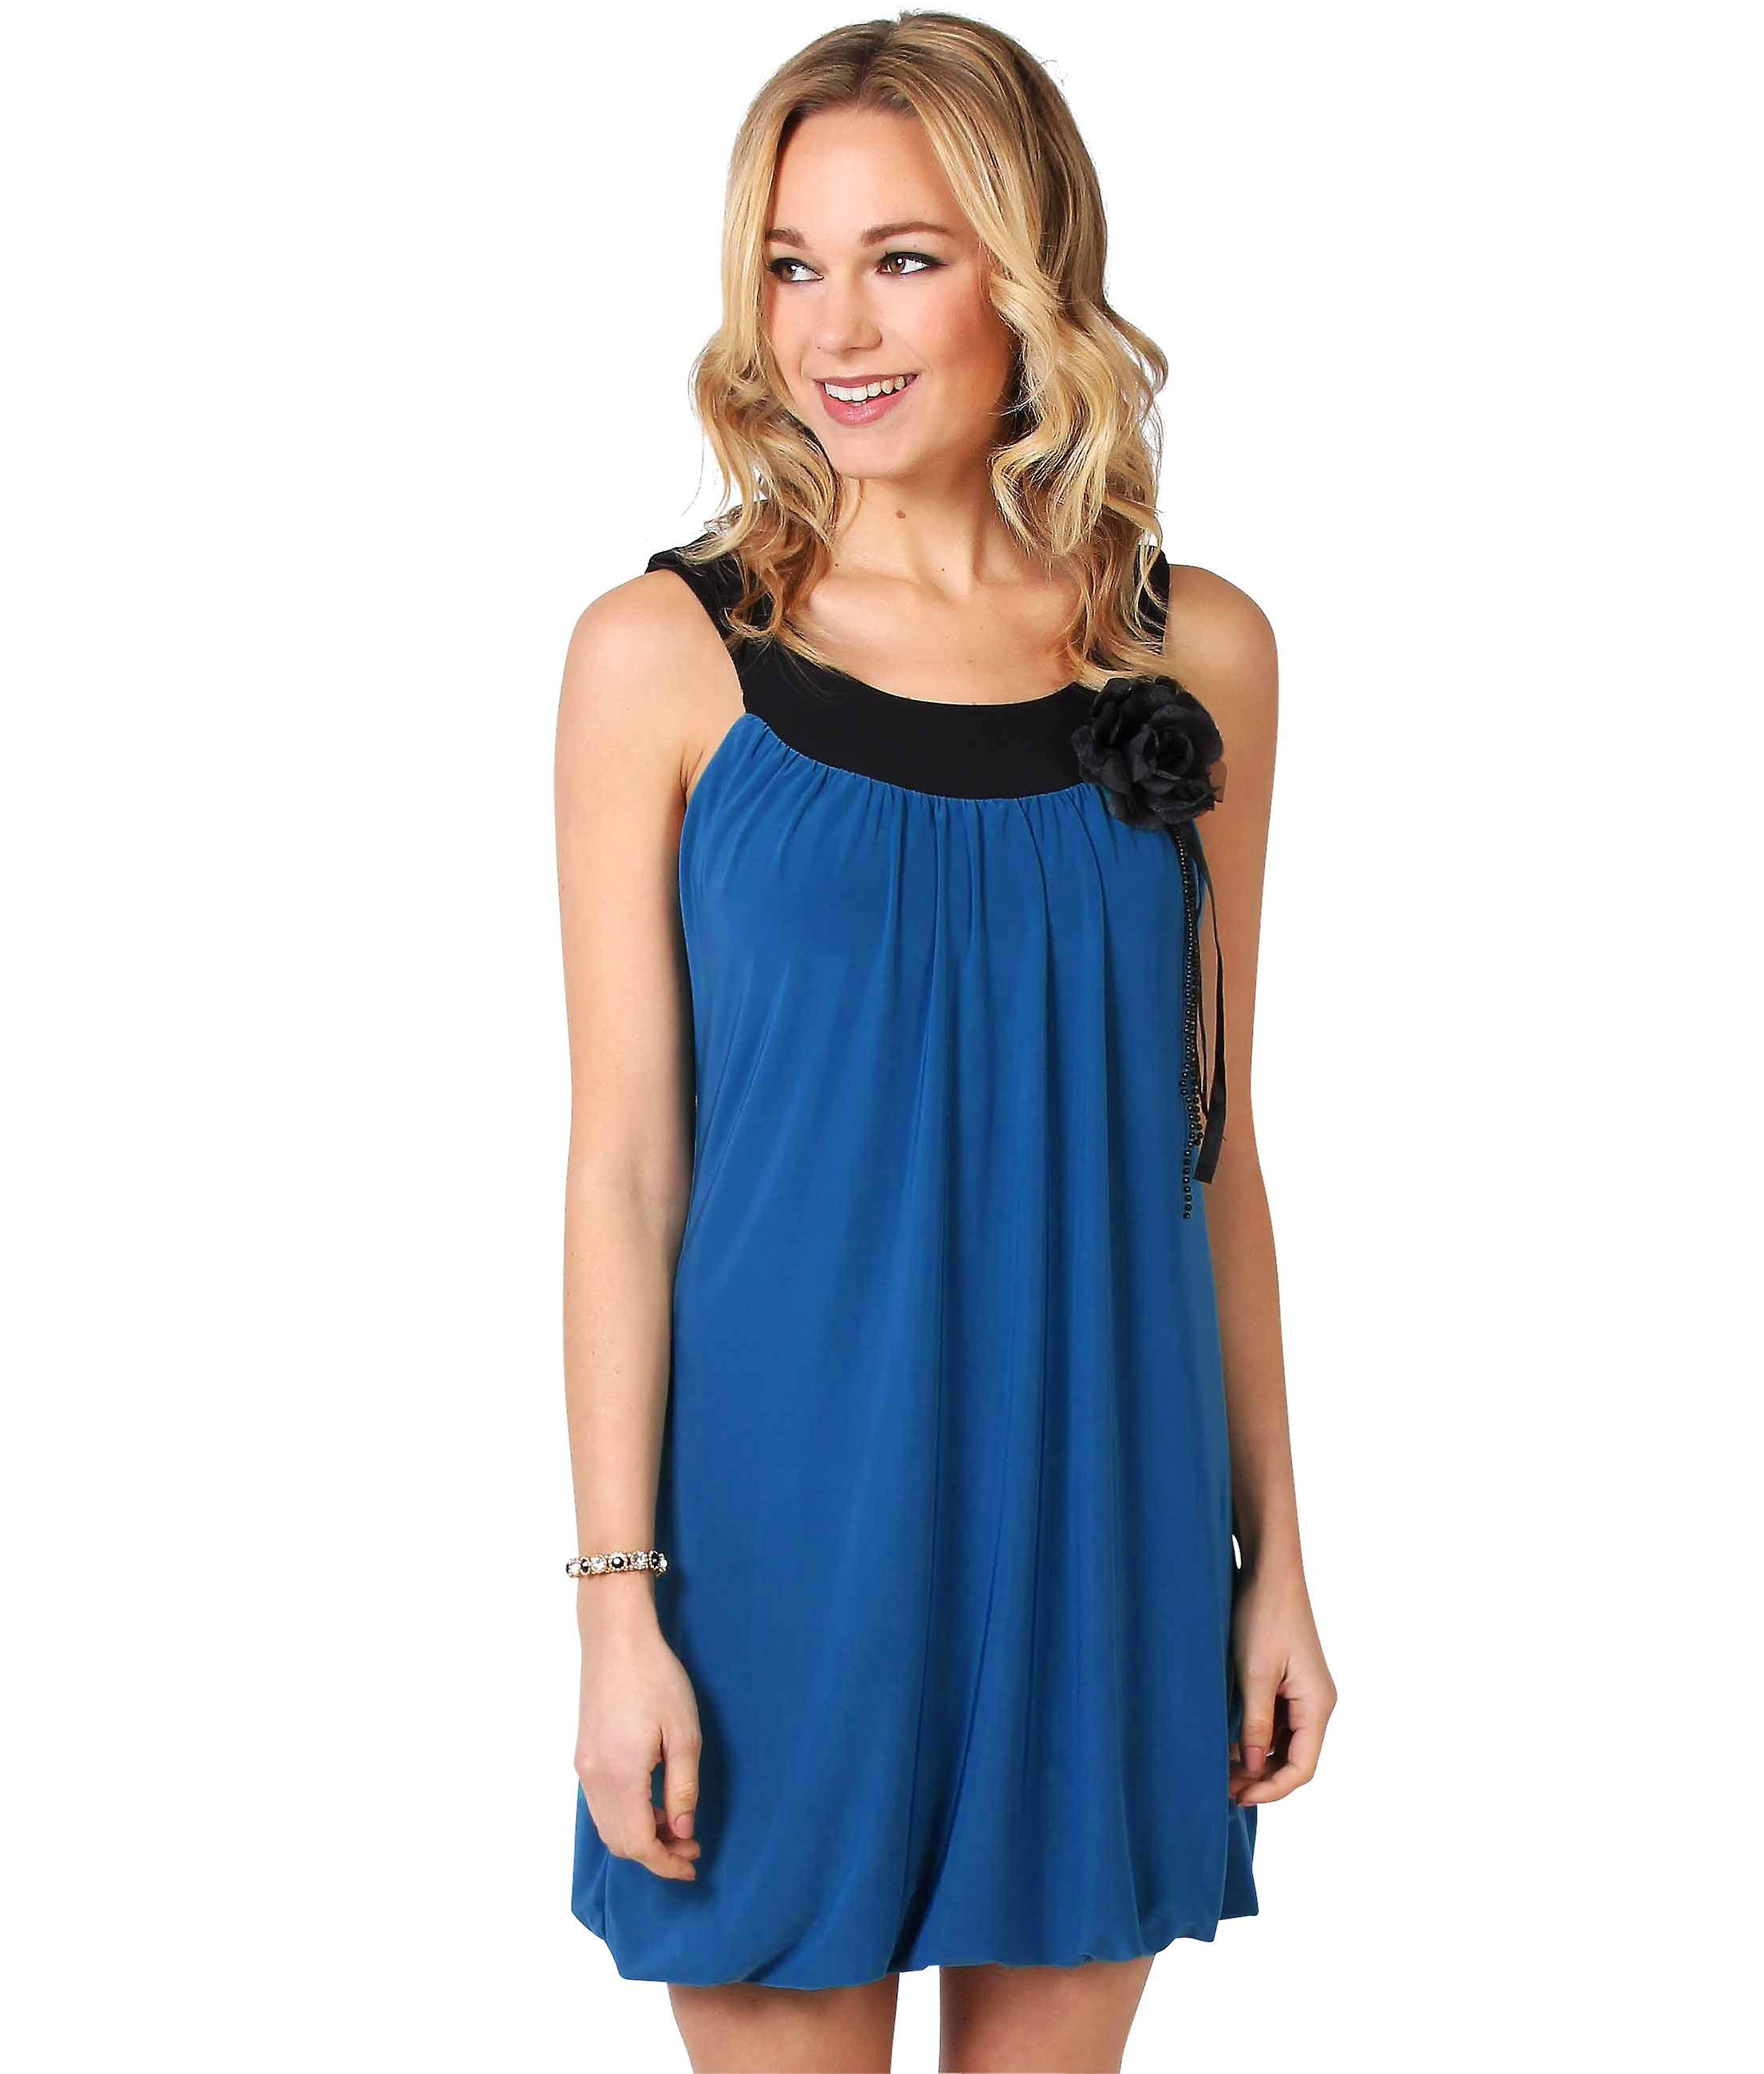 KRISP Womens Boho Puffball Dress Royal Blue 6